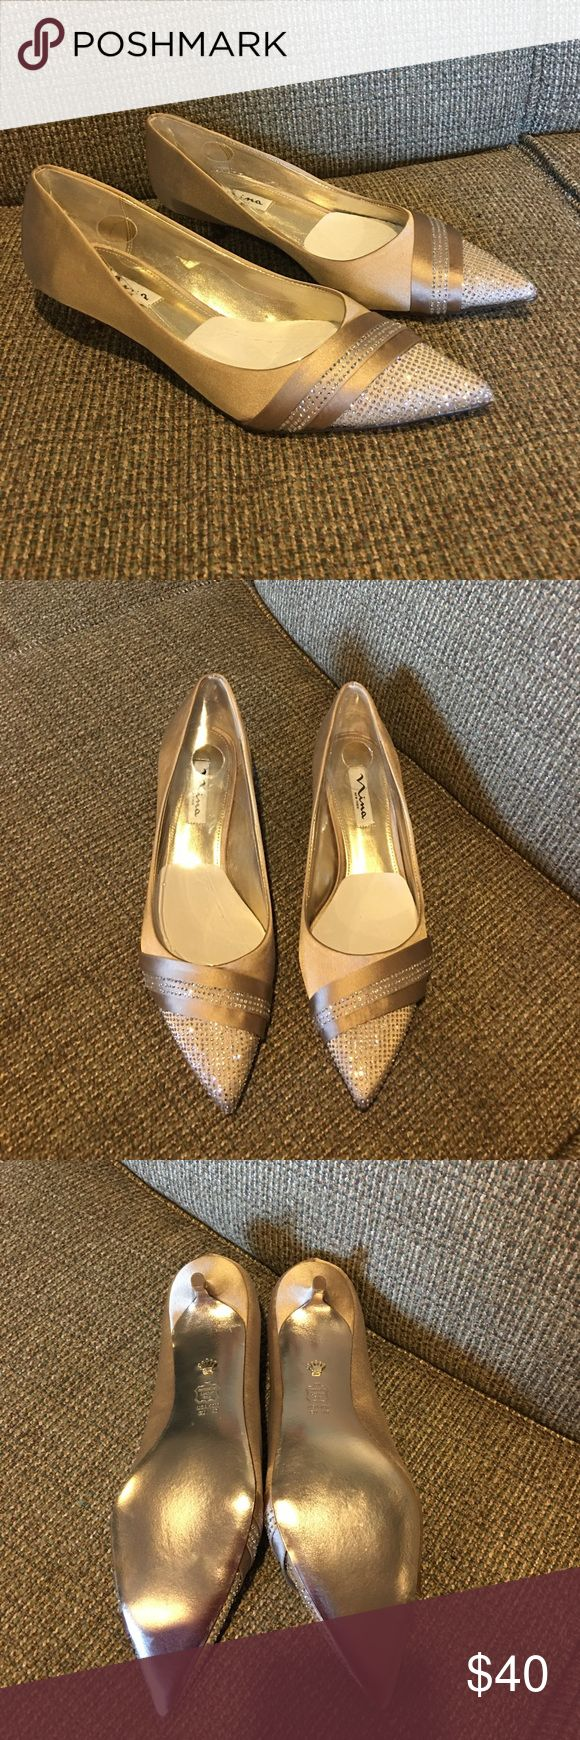 *sale* Nina New York Pointed-Toe Pump Nina New York Pointed-Toe Pump Brand New size. 10M. 1 1/2 inch heel, crystal satin Champagne color. Shoes are brand new and in mint condition but there is no box. Emmie style name. *sale* $25 firm Nina New York Shoes Heels